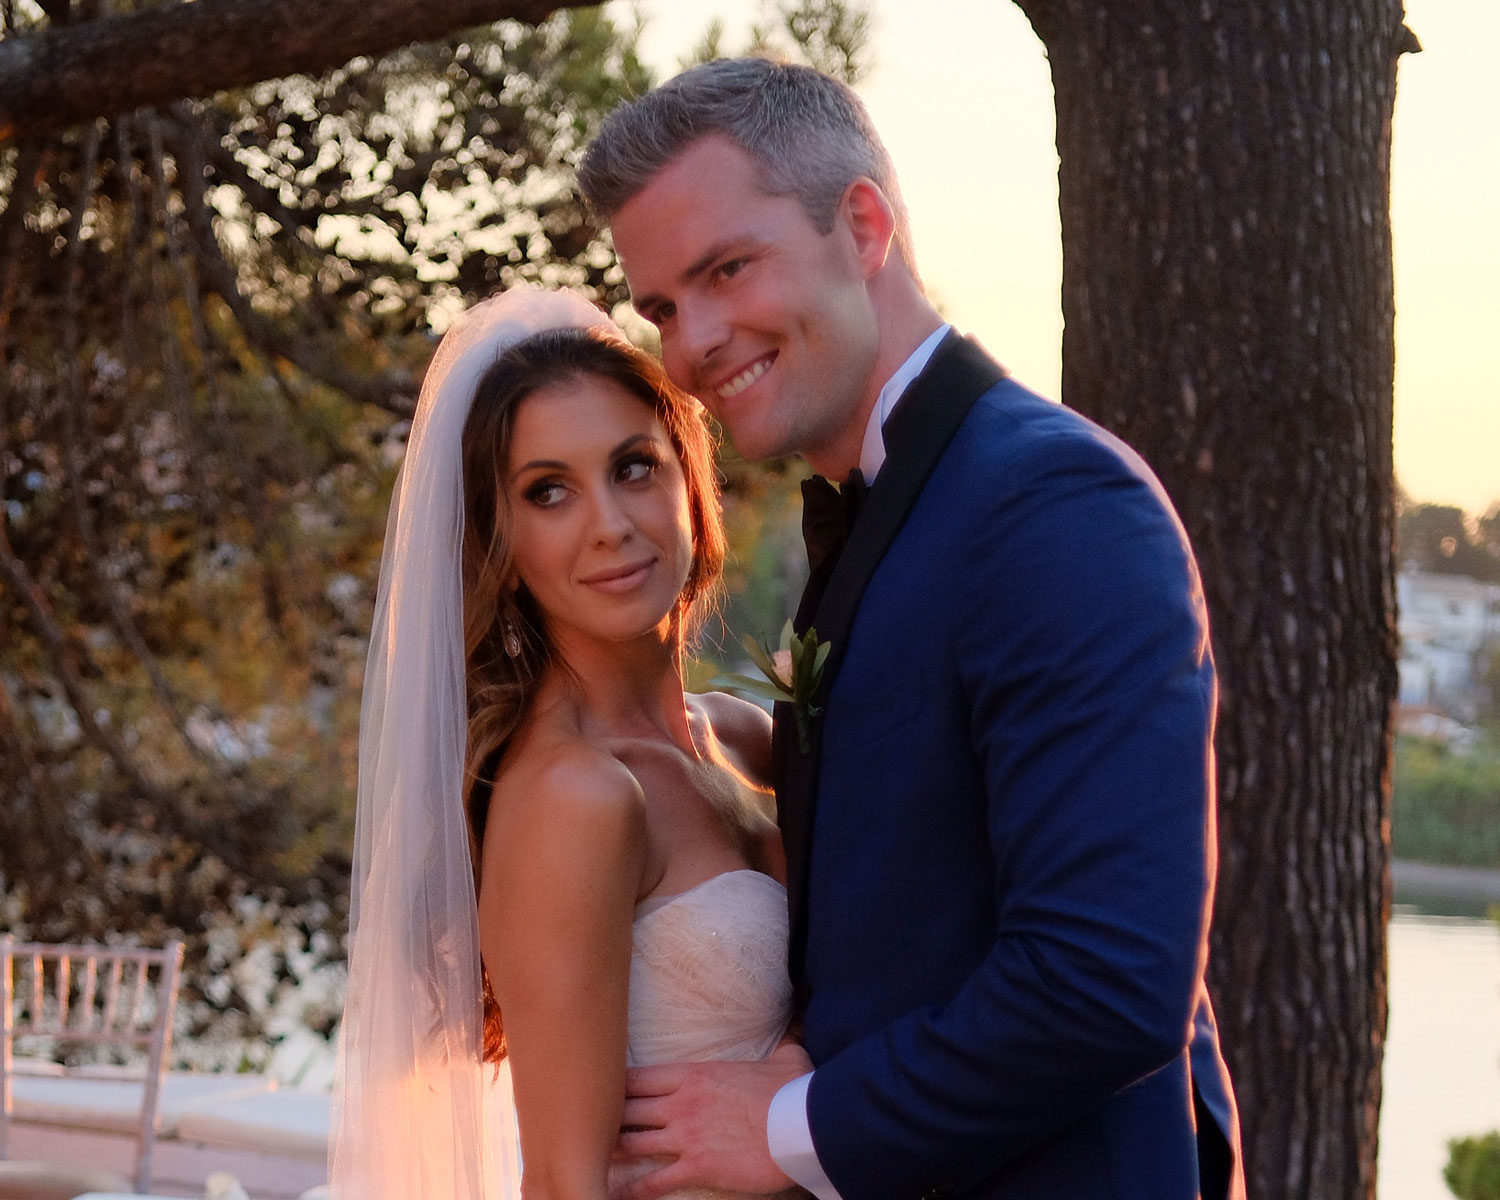 Ryan Serhant Documents First Person Account Of Wedding